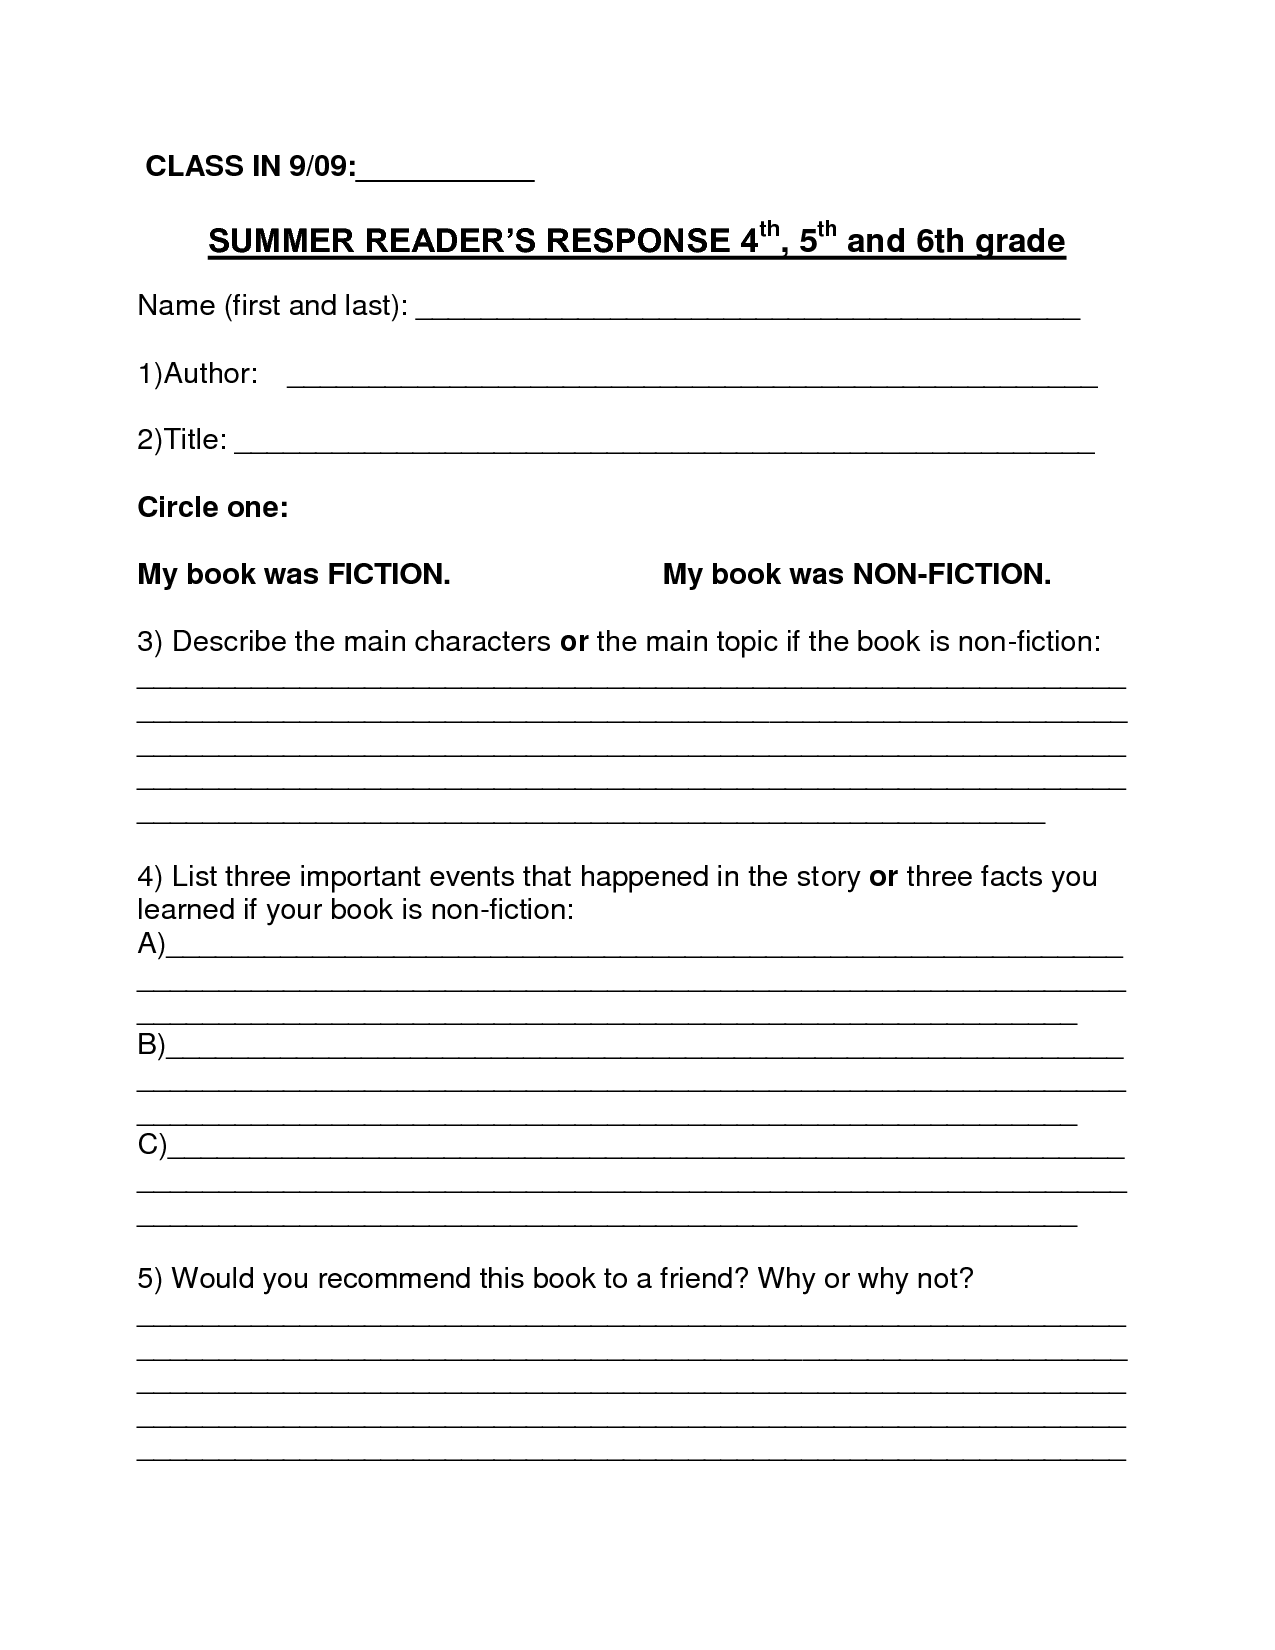 Book Report Template | SUMMER BOOK REPORT 4th  6th Grade   Download As DOC